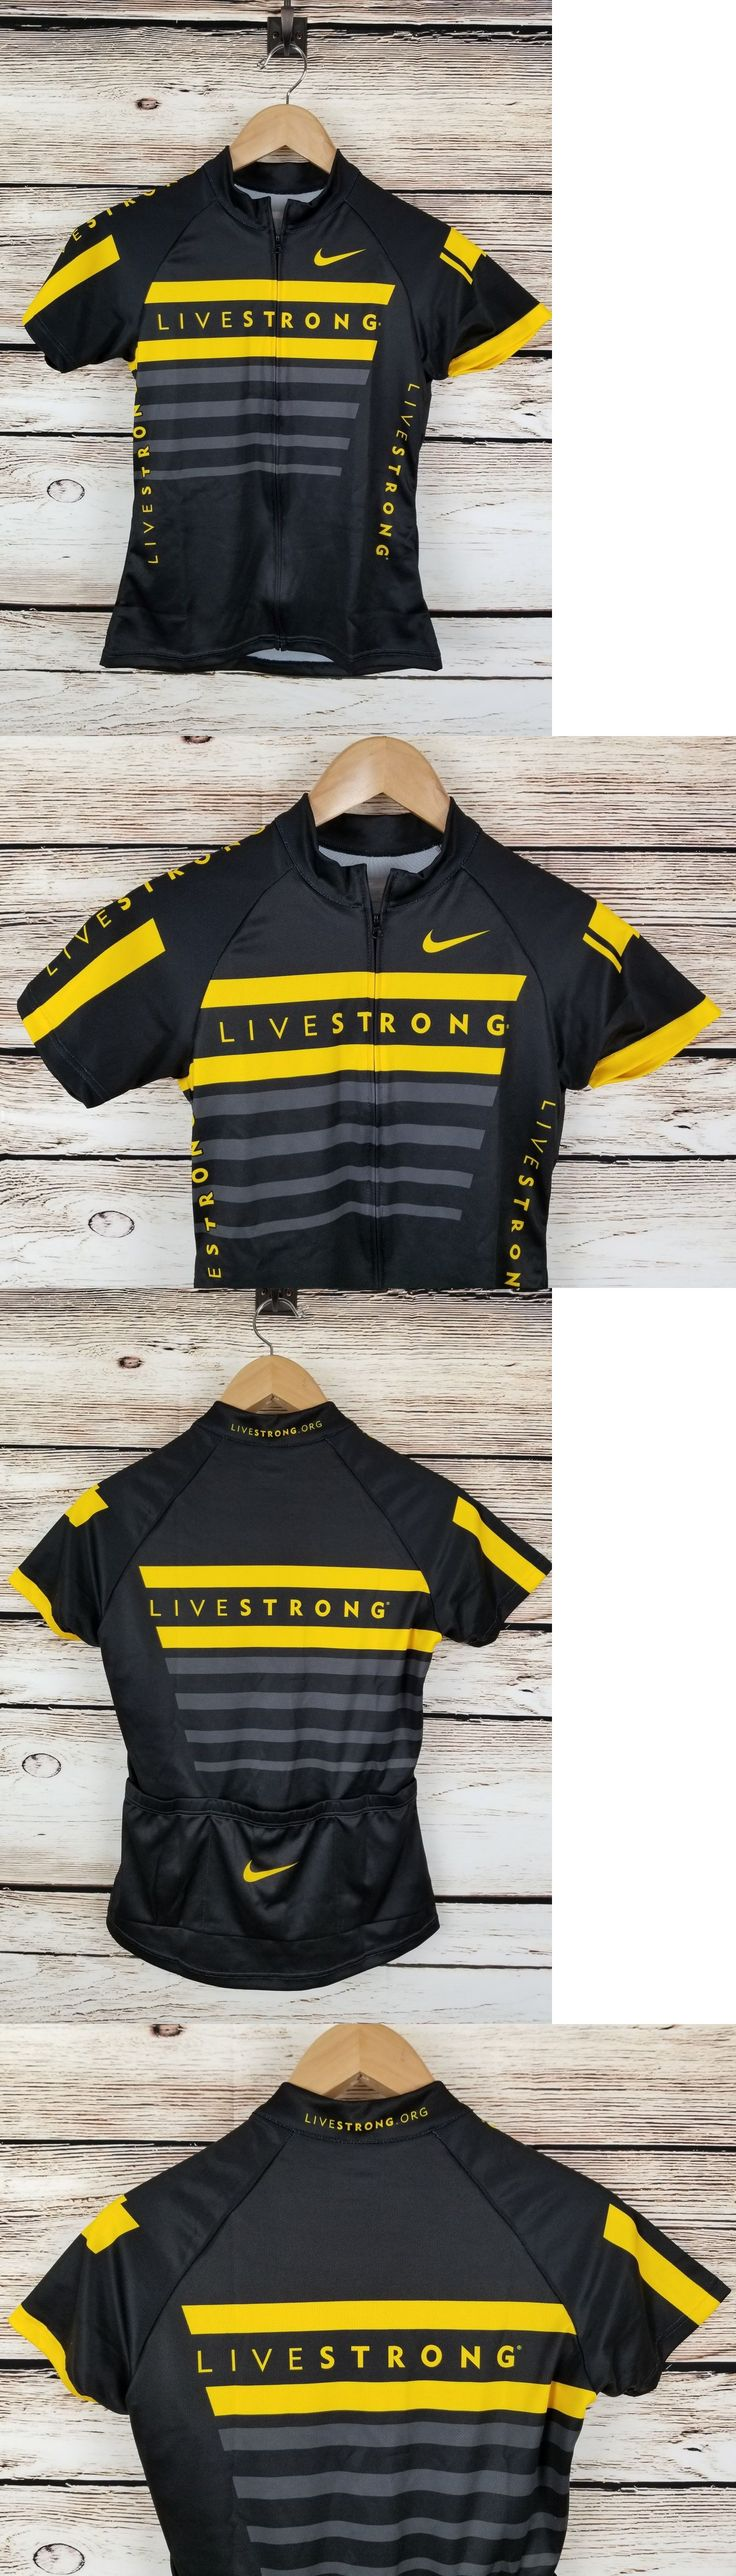 Jerseys 56183: New Nike Livestrong Womens Cycling Jersey Small S S Full Zip Black Yellow Swoosh -> BUY IT NOW ONLY: $49.99 on eBay!